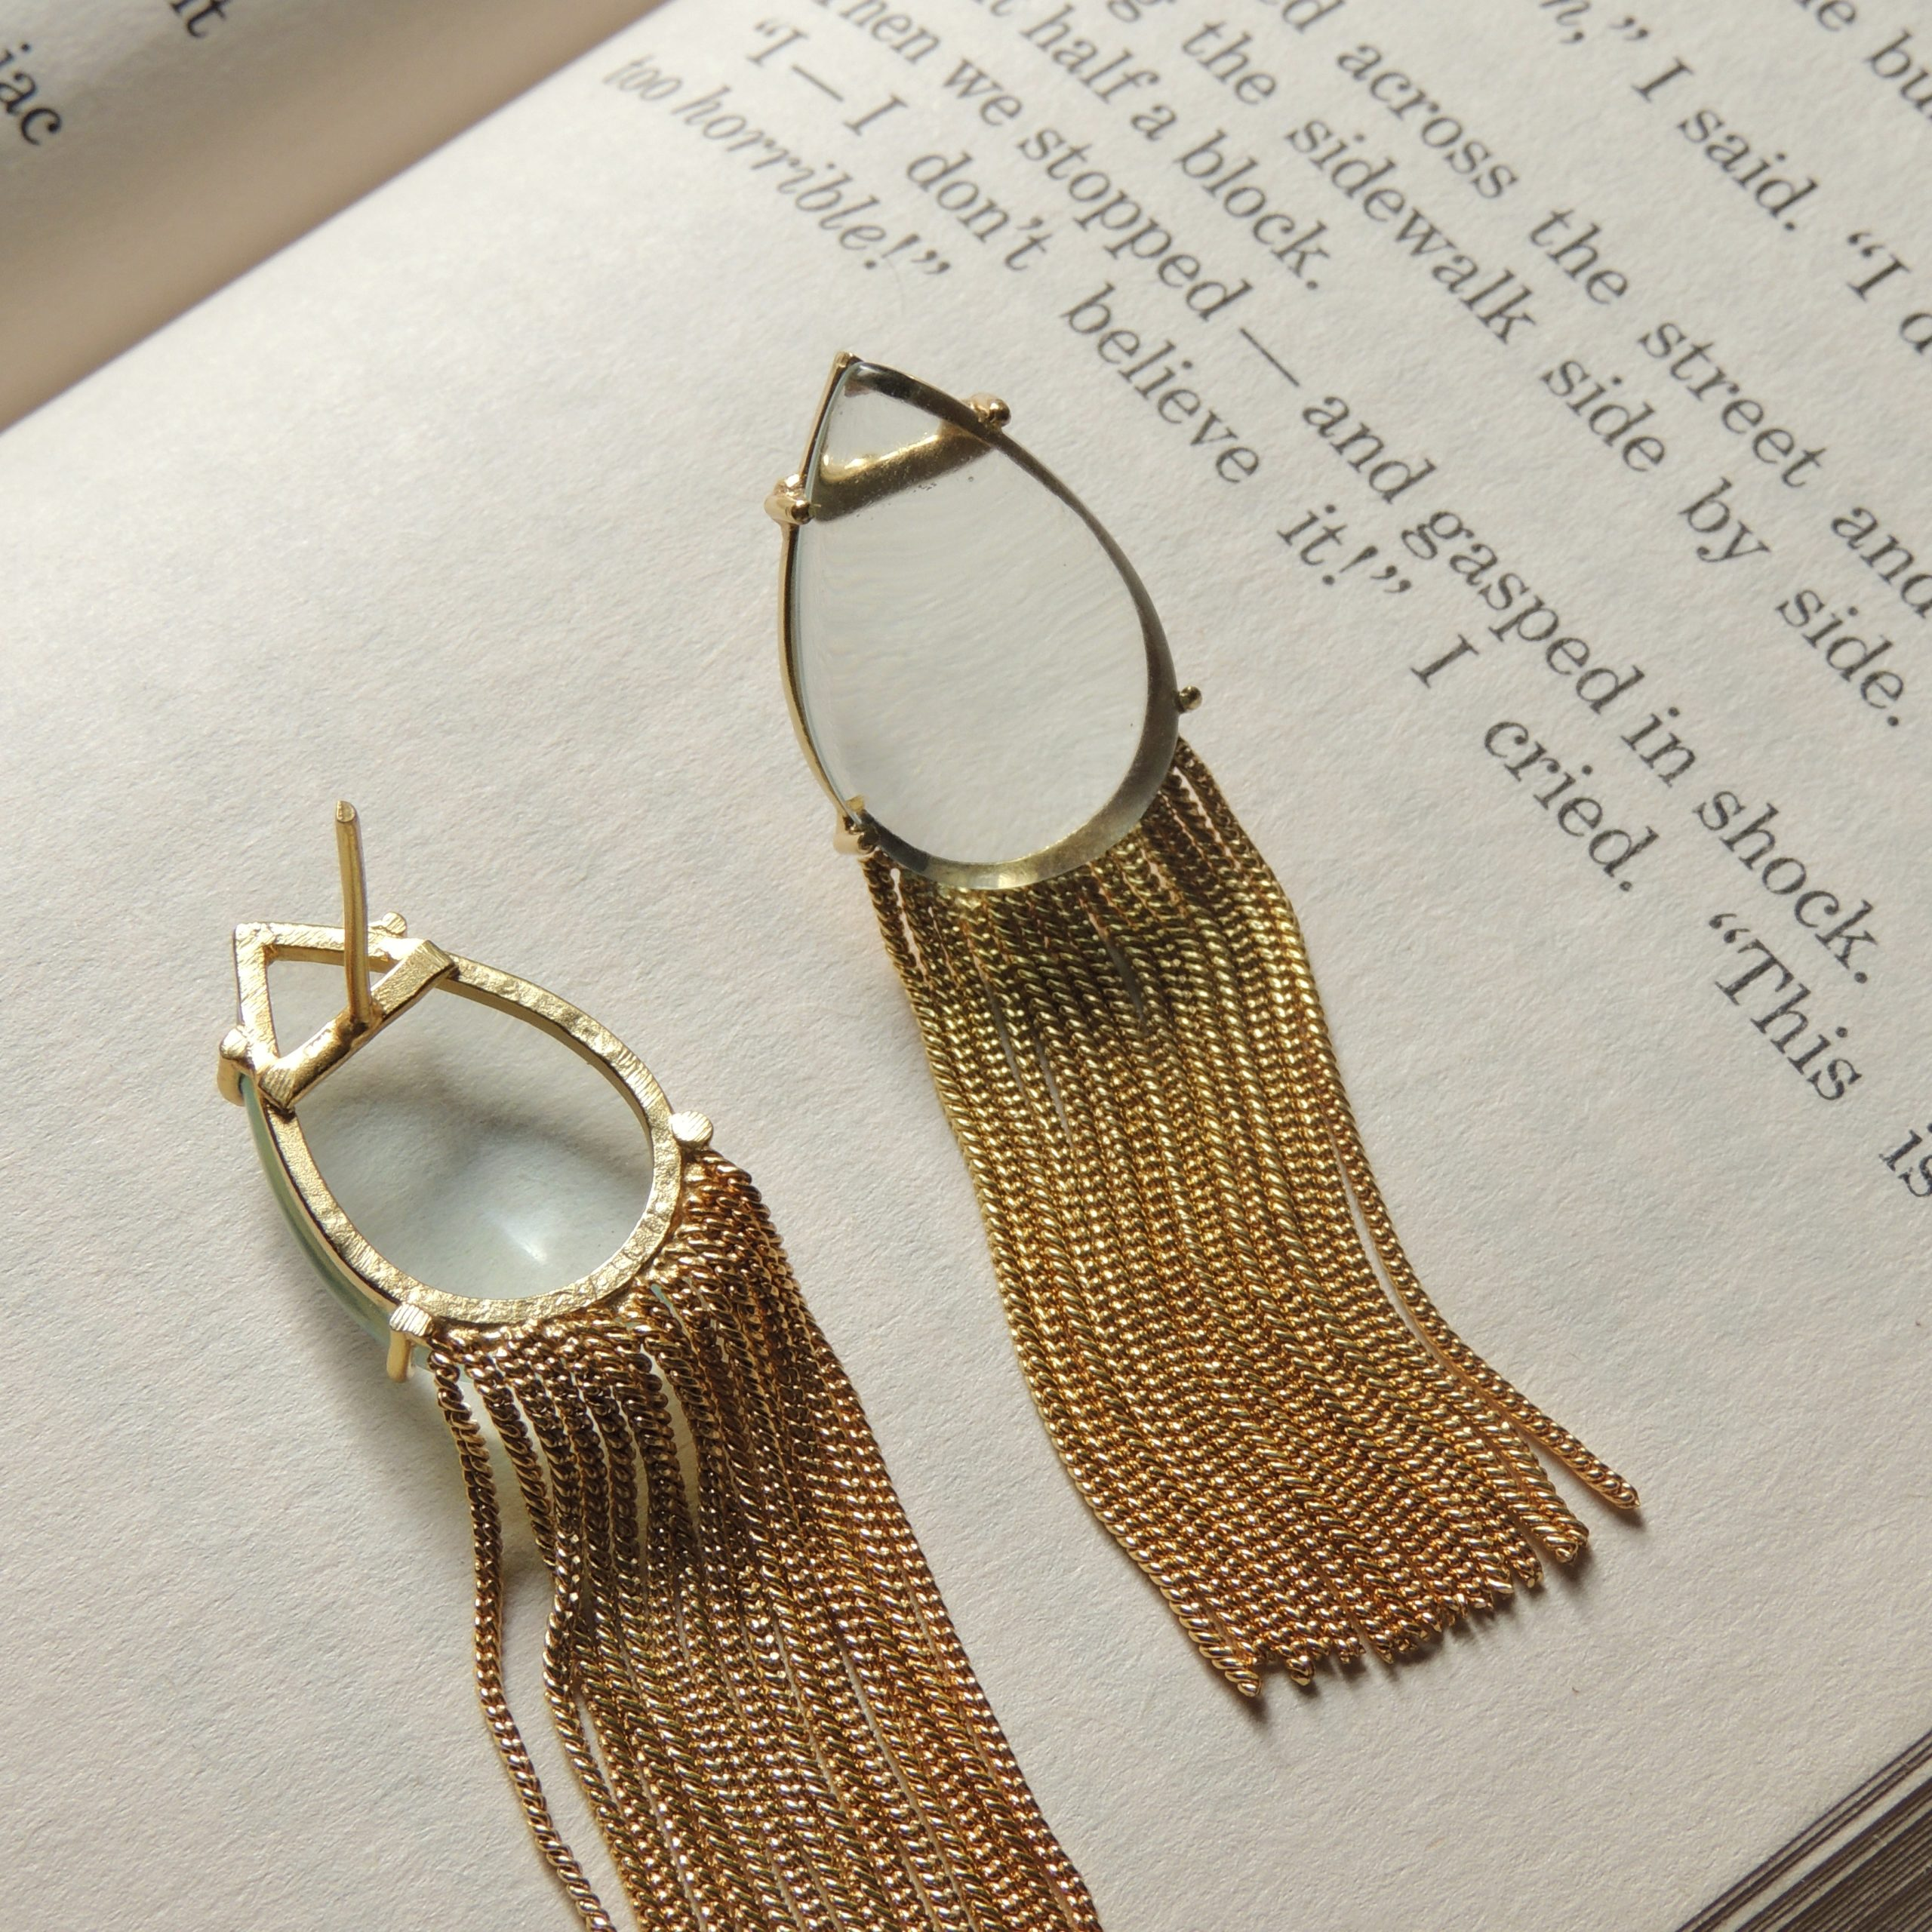 Western White Transparent Chain Earring 2